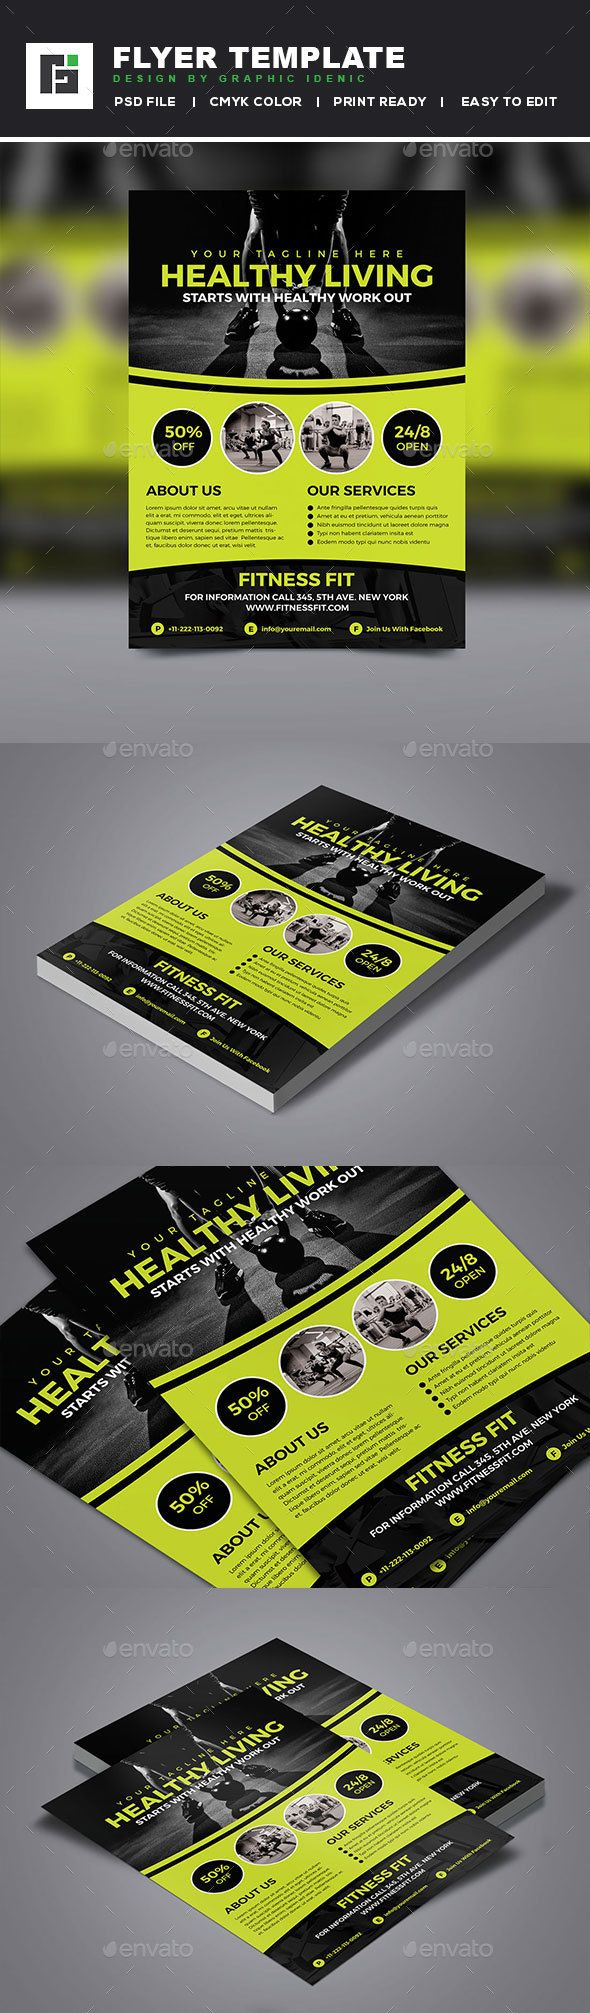 Fitness Flyer Template PSD. Download here: http://graphicriver.net/item/fitness-flyer/16021763?ref=ksioks